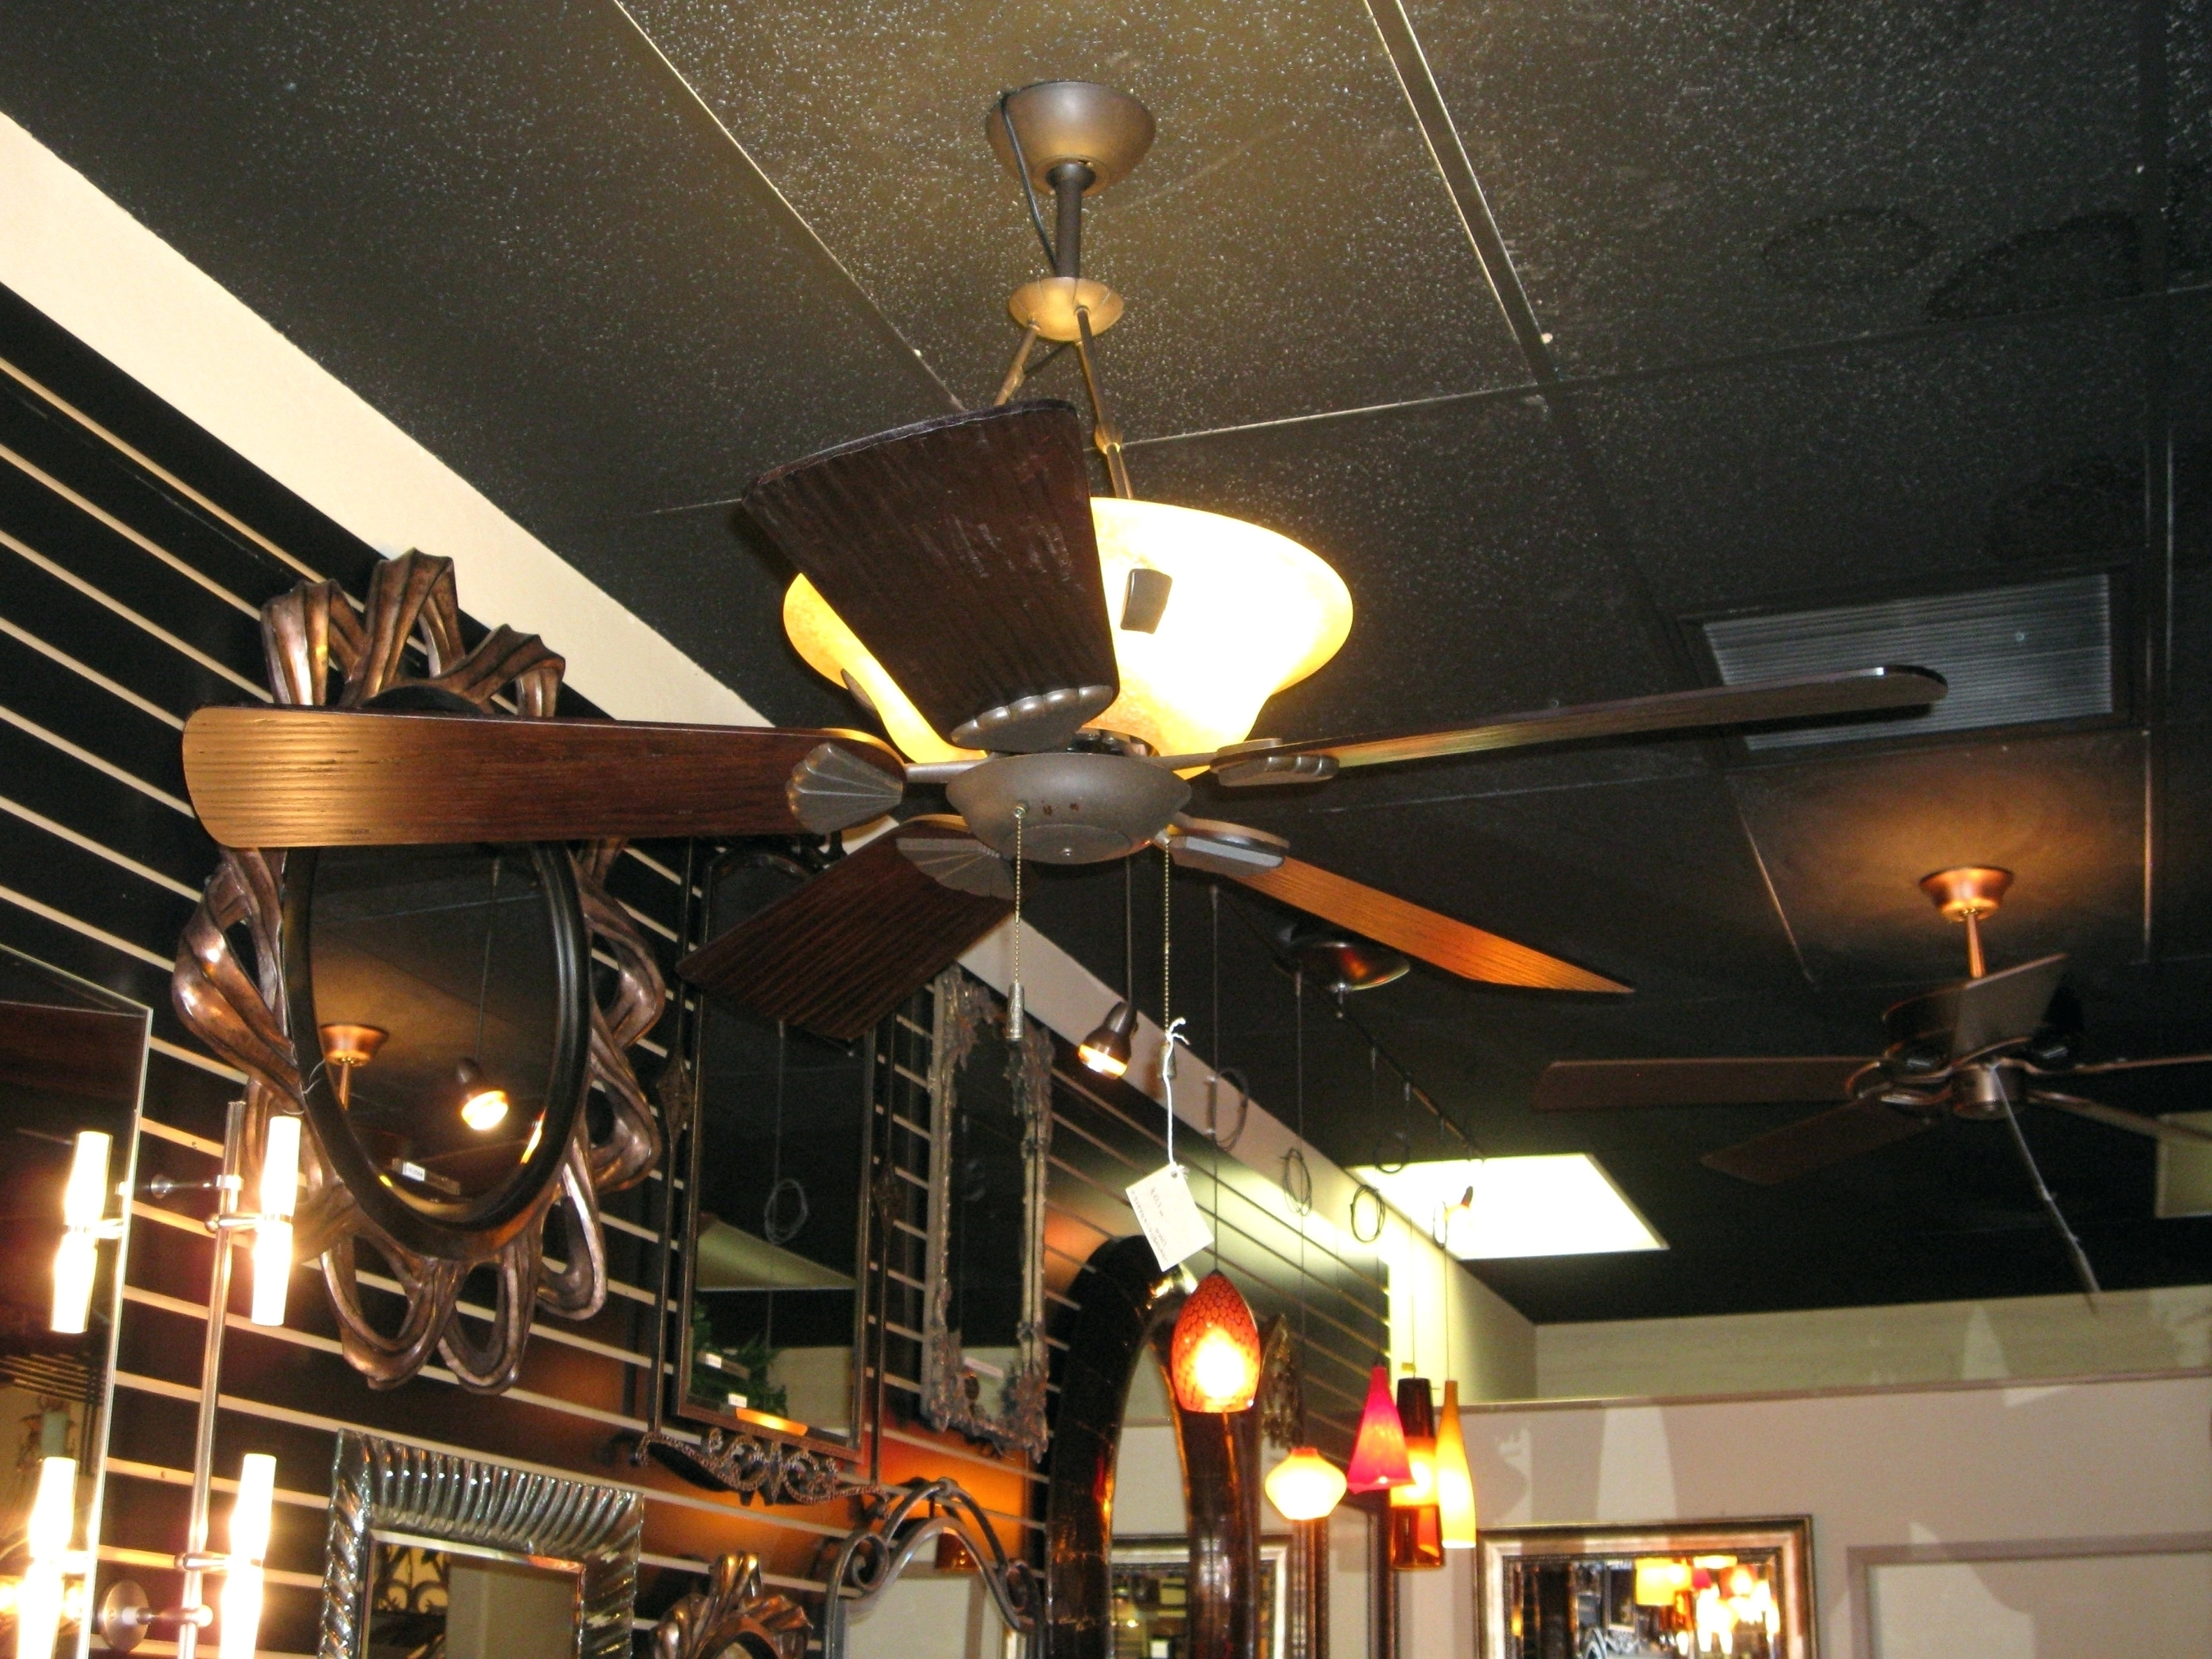 Famous Ceiling Fans : Indoor Outdoor Ceiling Fan Uplight Kit Ceiling Fan Regarding Outdoor Ceiling Fans With Uplights (View 14 of 20)